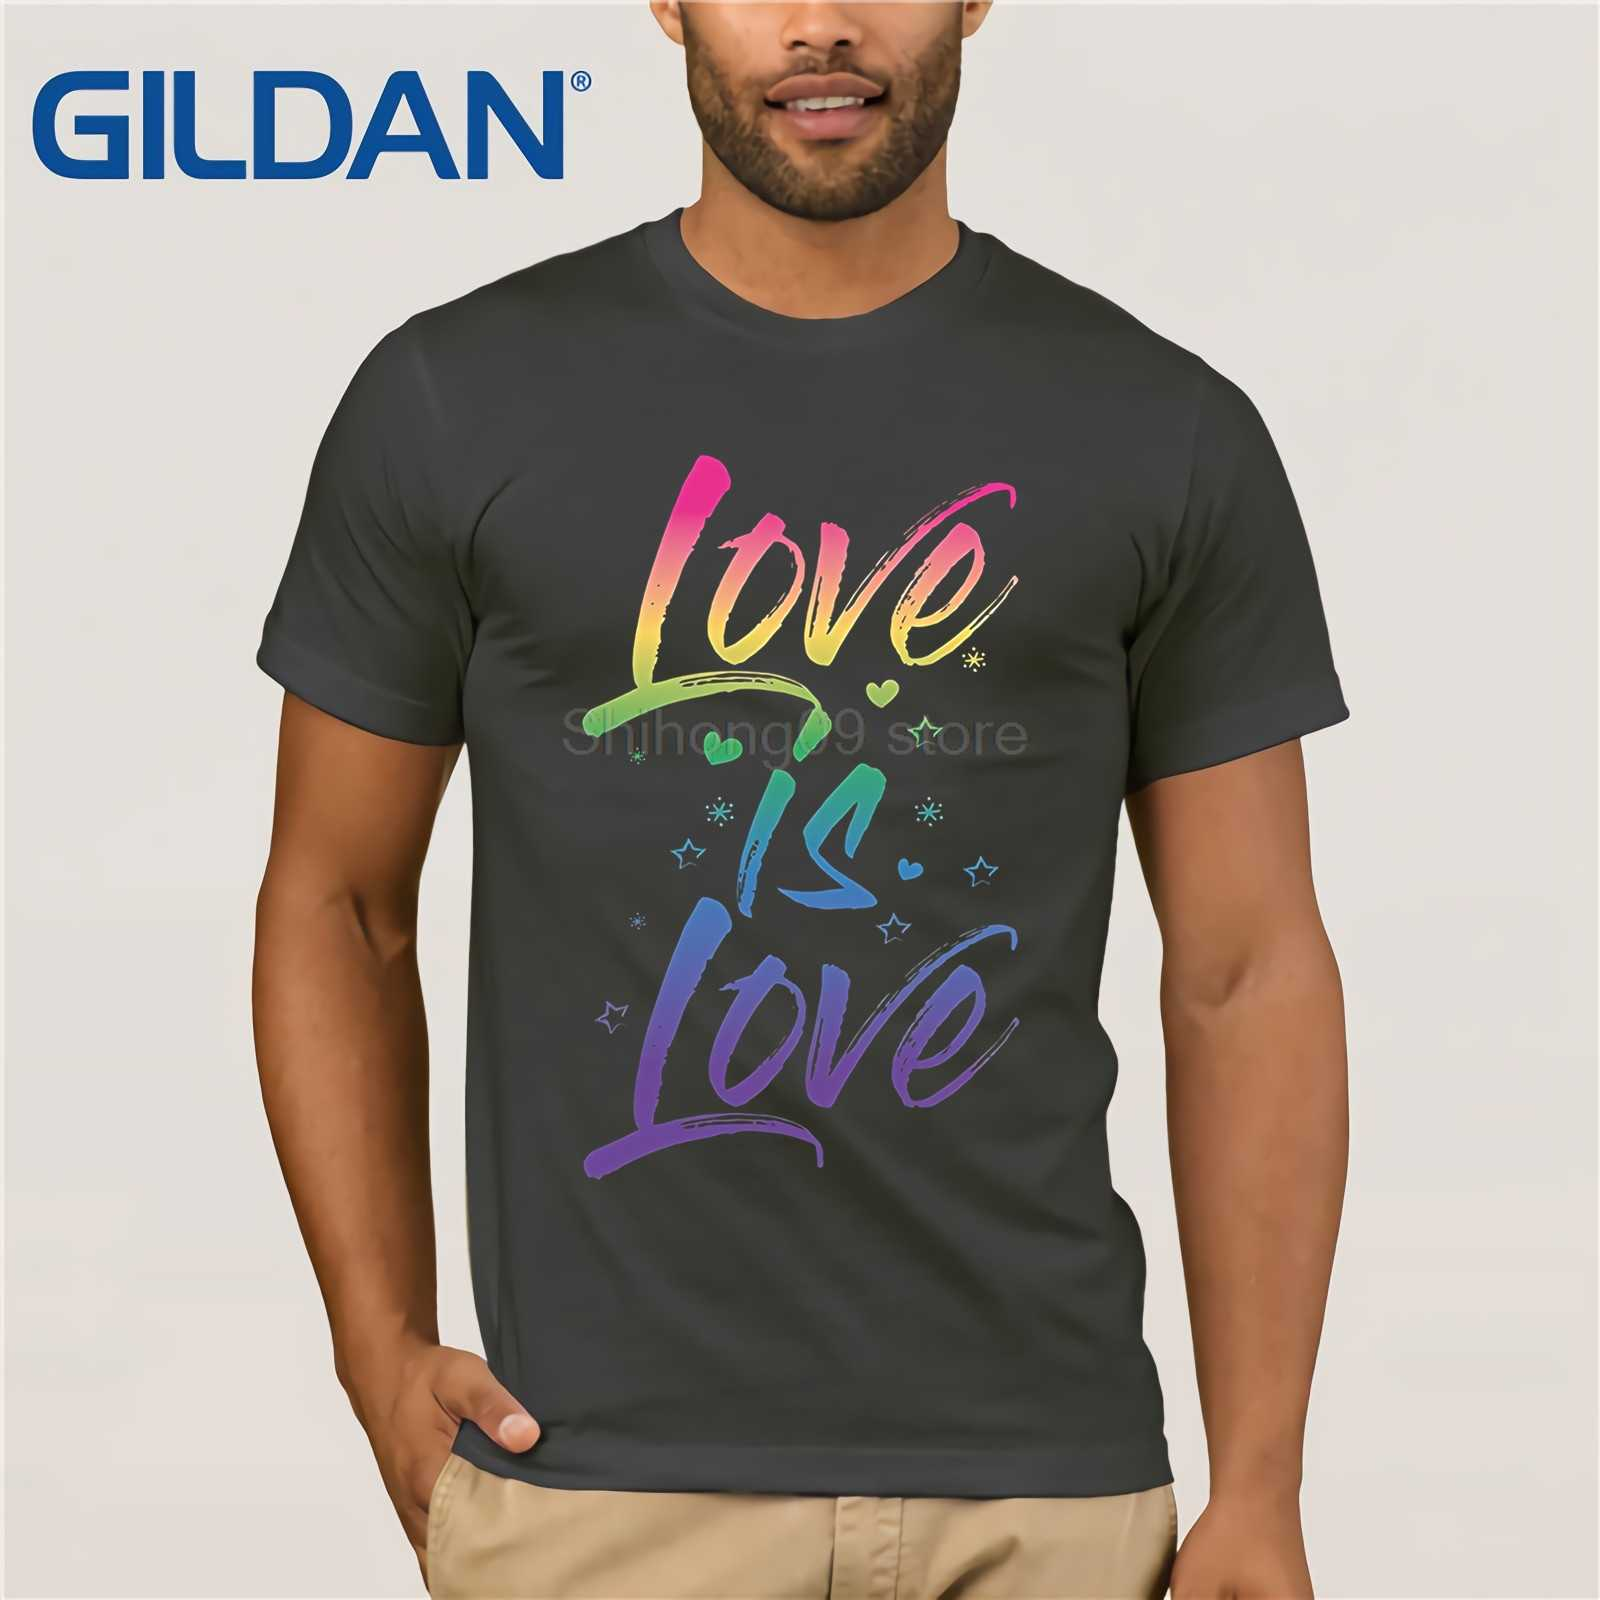 7371faba ... GILDAN Gay Pride Shirt Rainbow Script Love is Love LGBT Cute TShirt  Funny men's print t ...